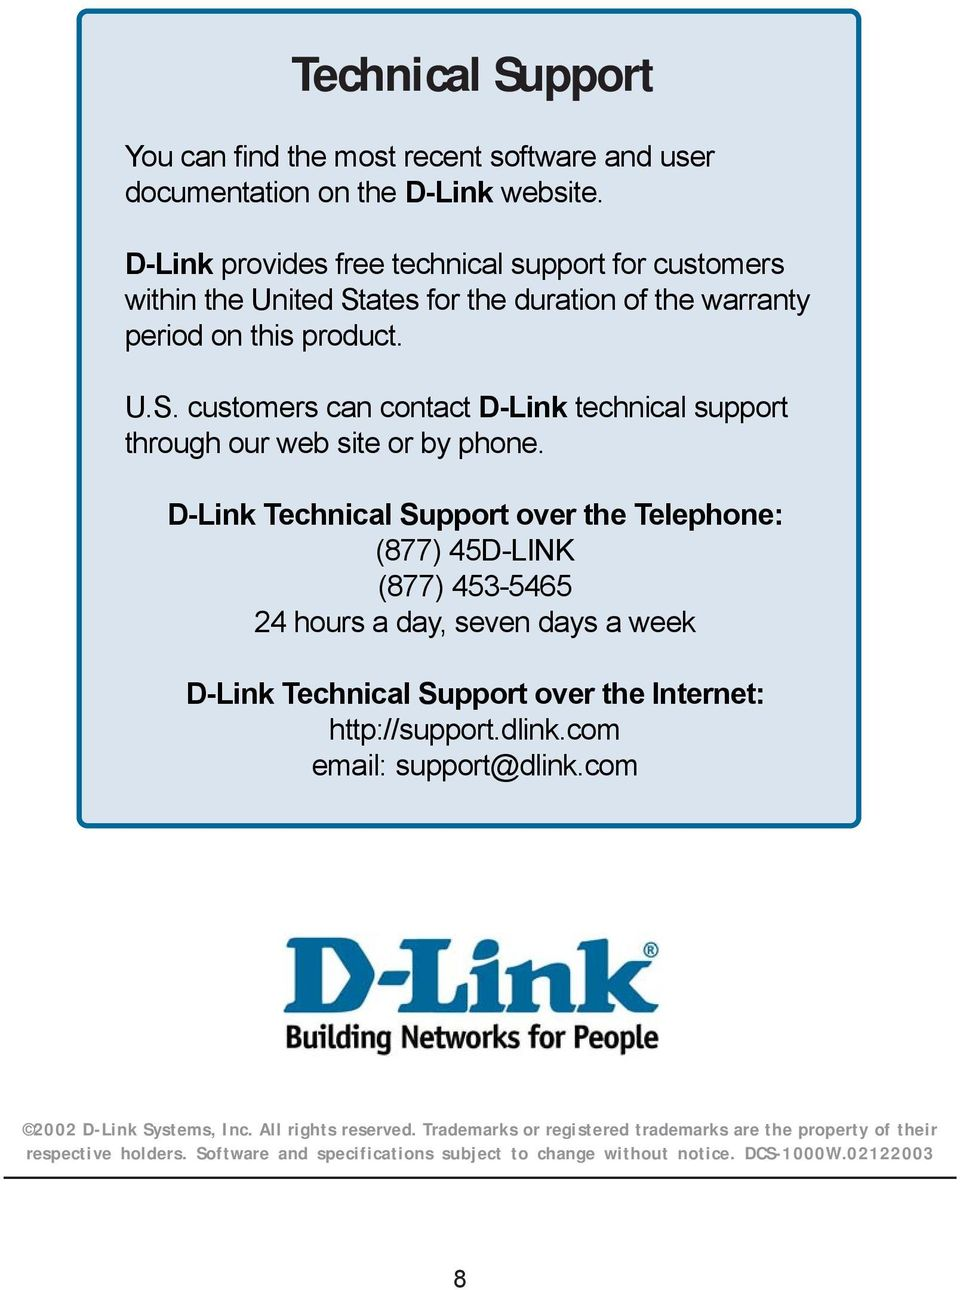 D-Link Technical Support over the Telephone: (877) 45D-LINK (877) 453-5465 24 hours a day, seven days a week D-Link Technical Support over the Internet: http://support.dlink.